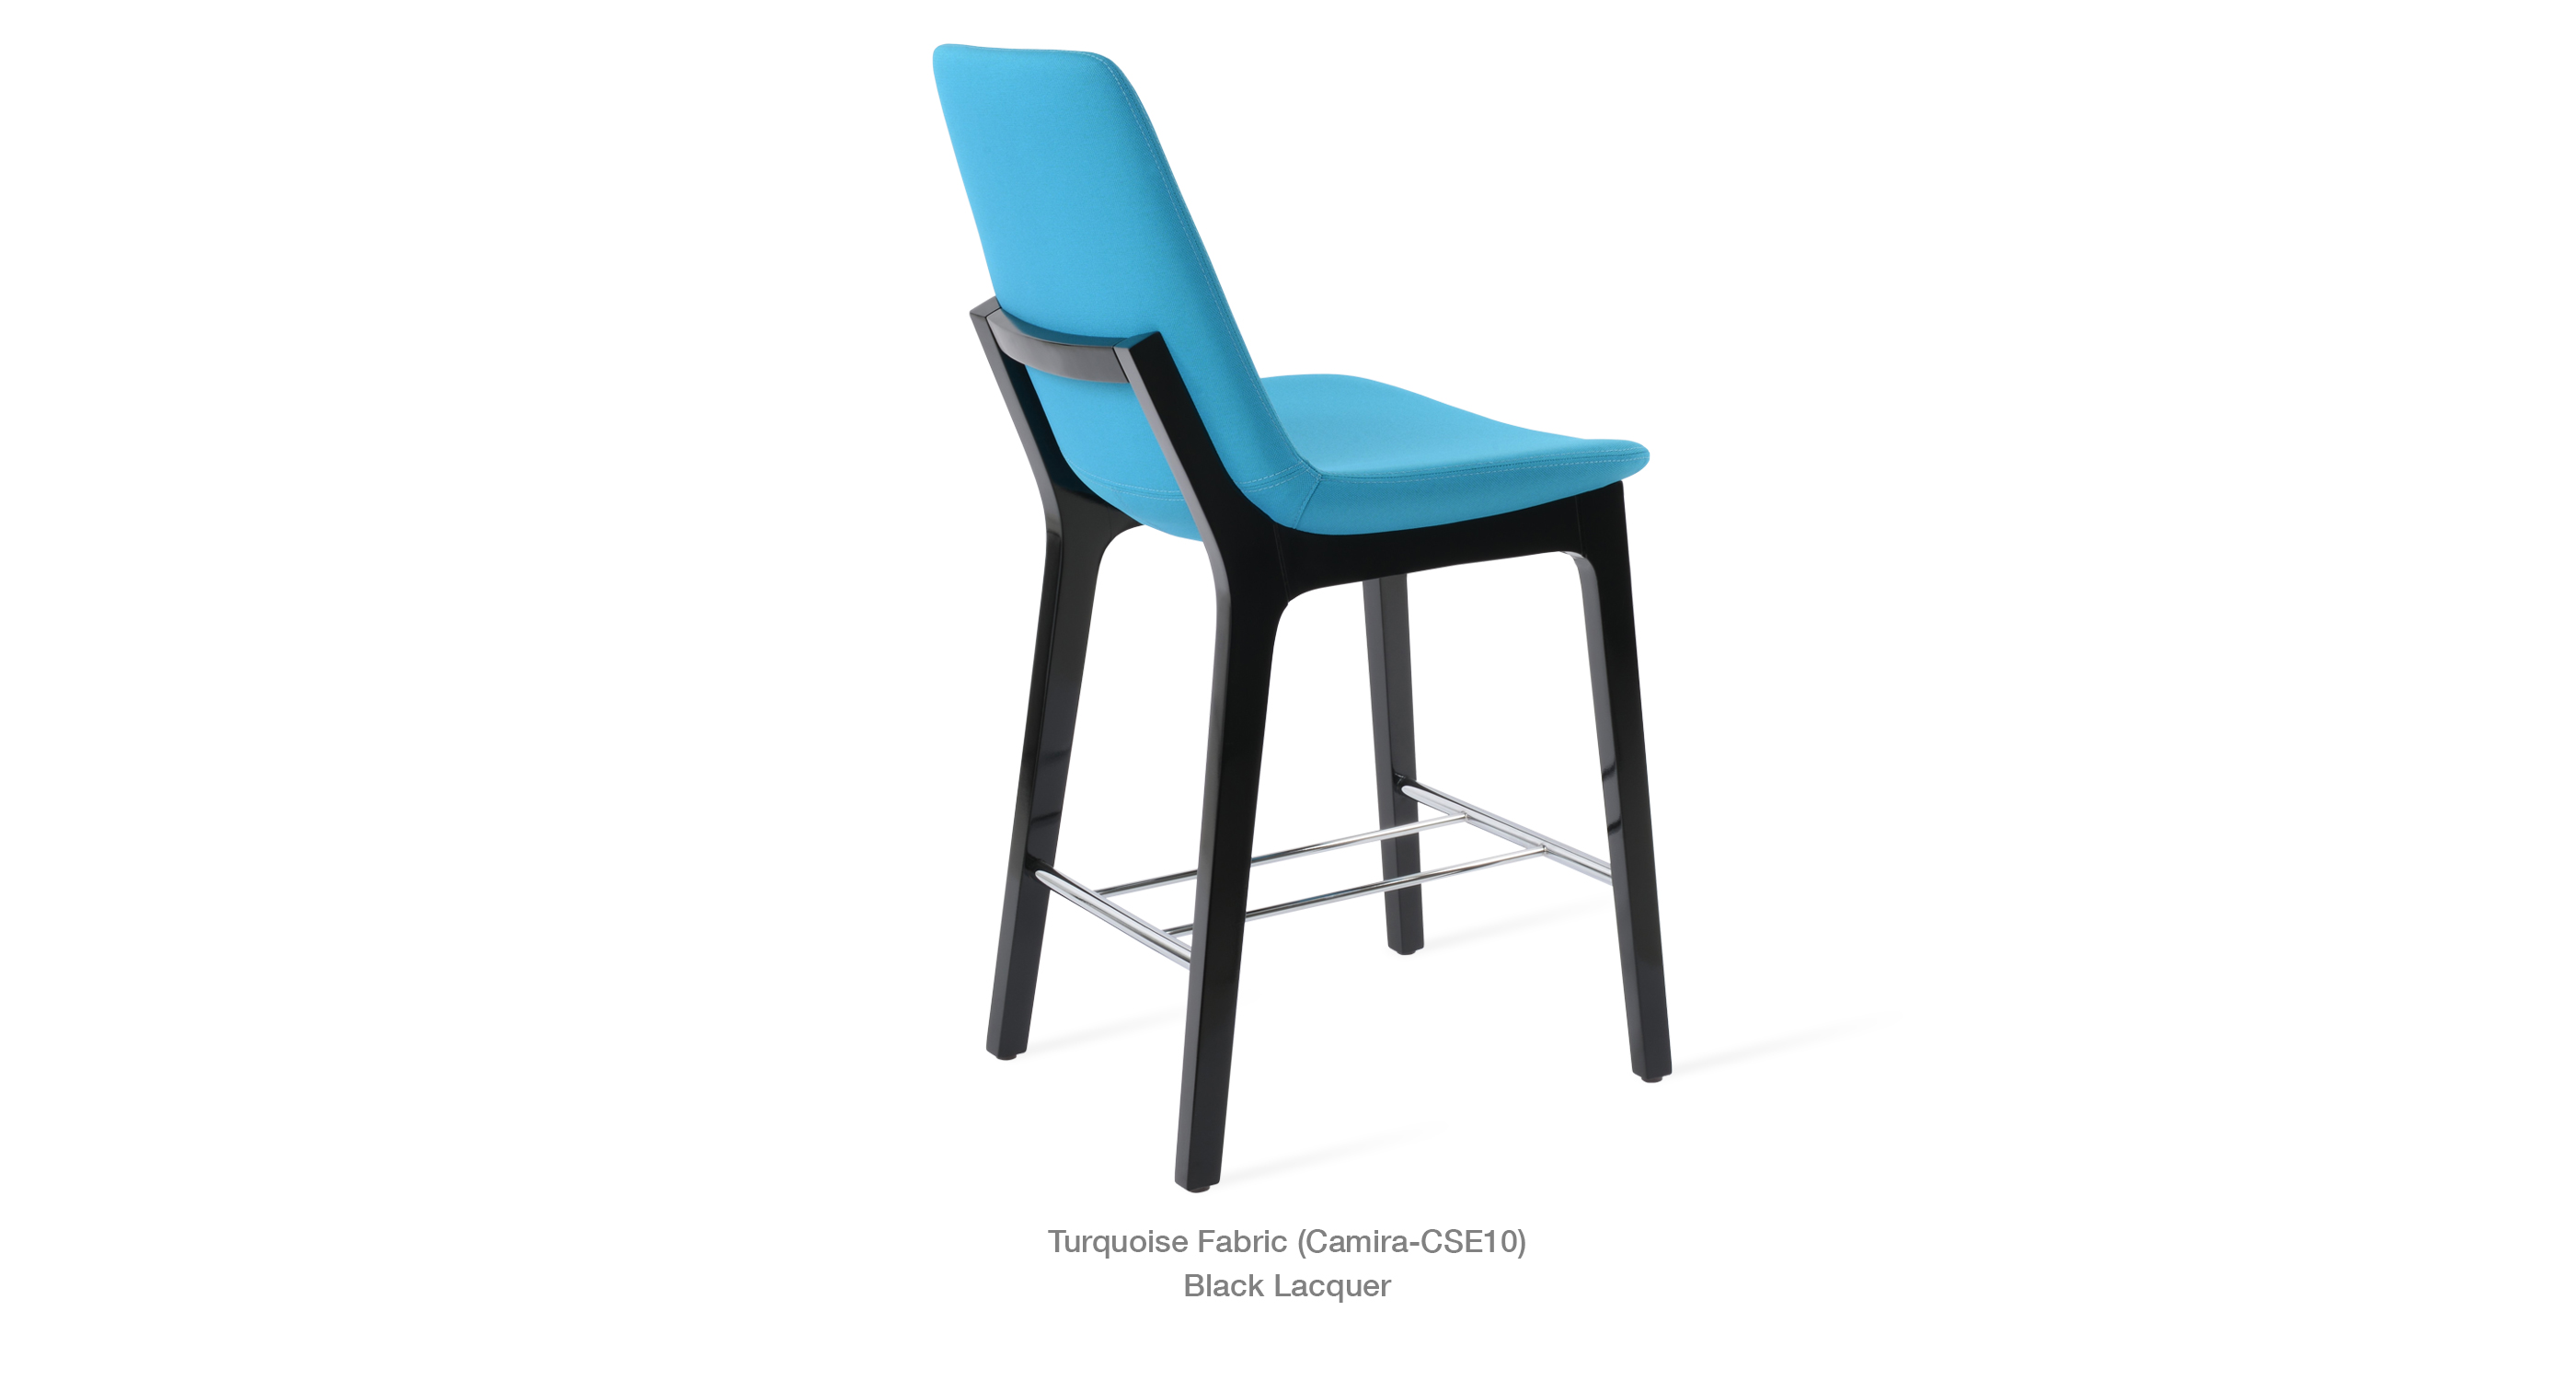 turquoise camira - black lacquer